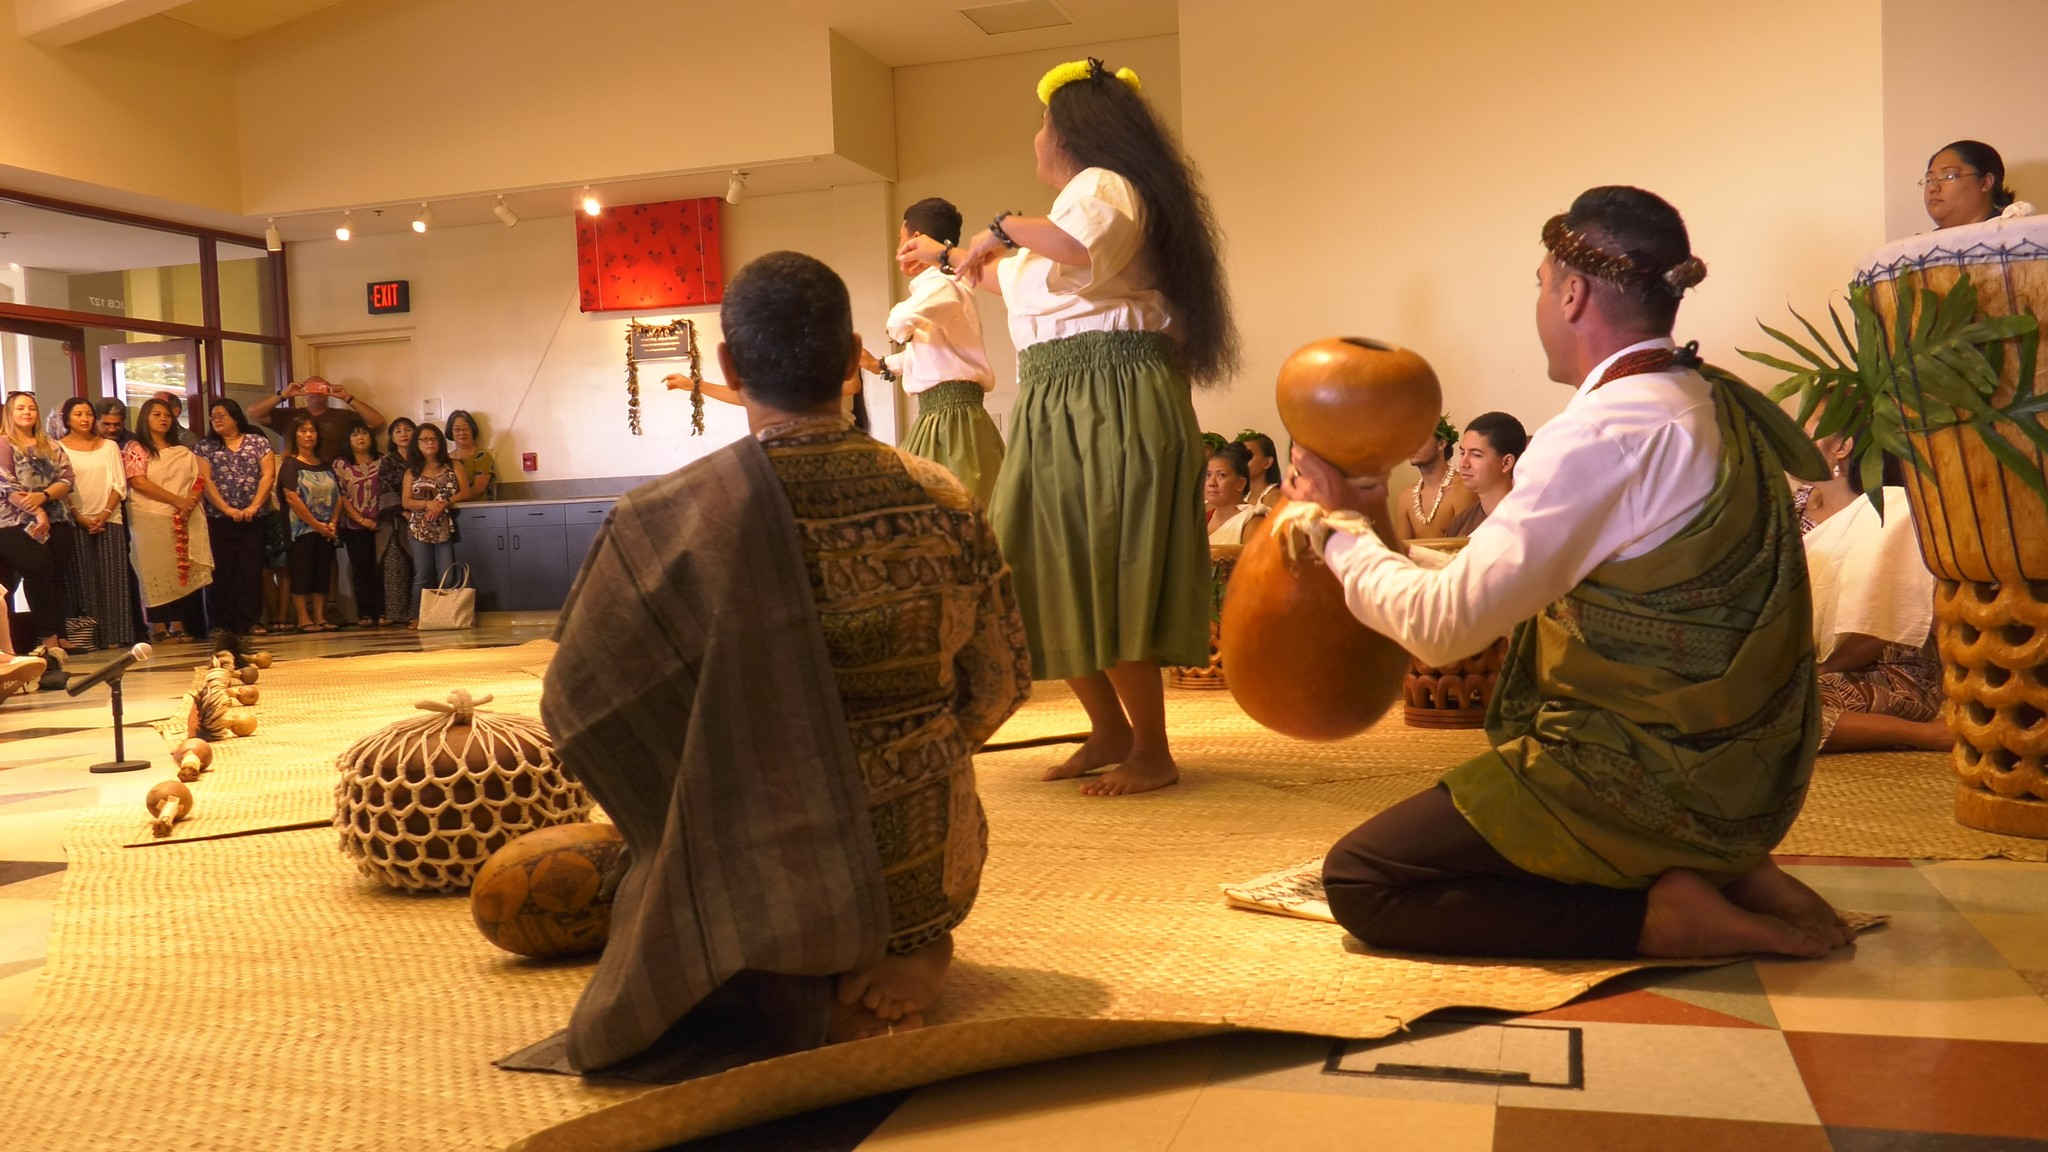 Dancers and drummers.